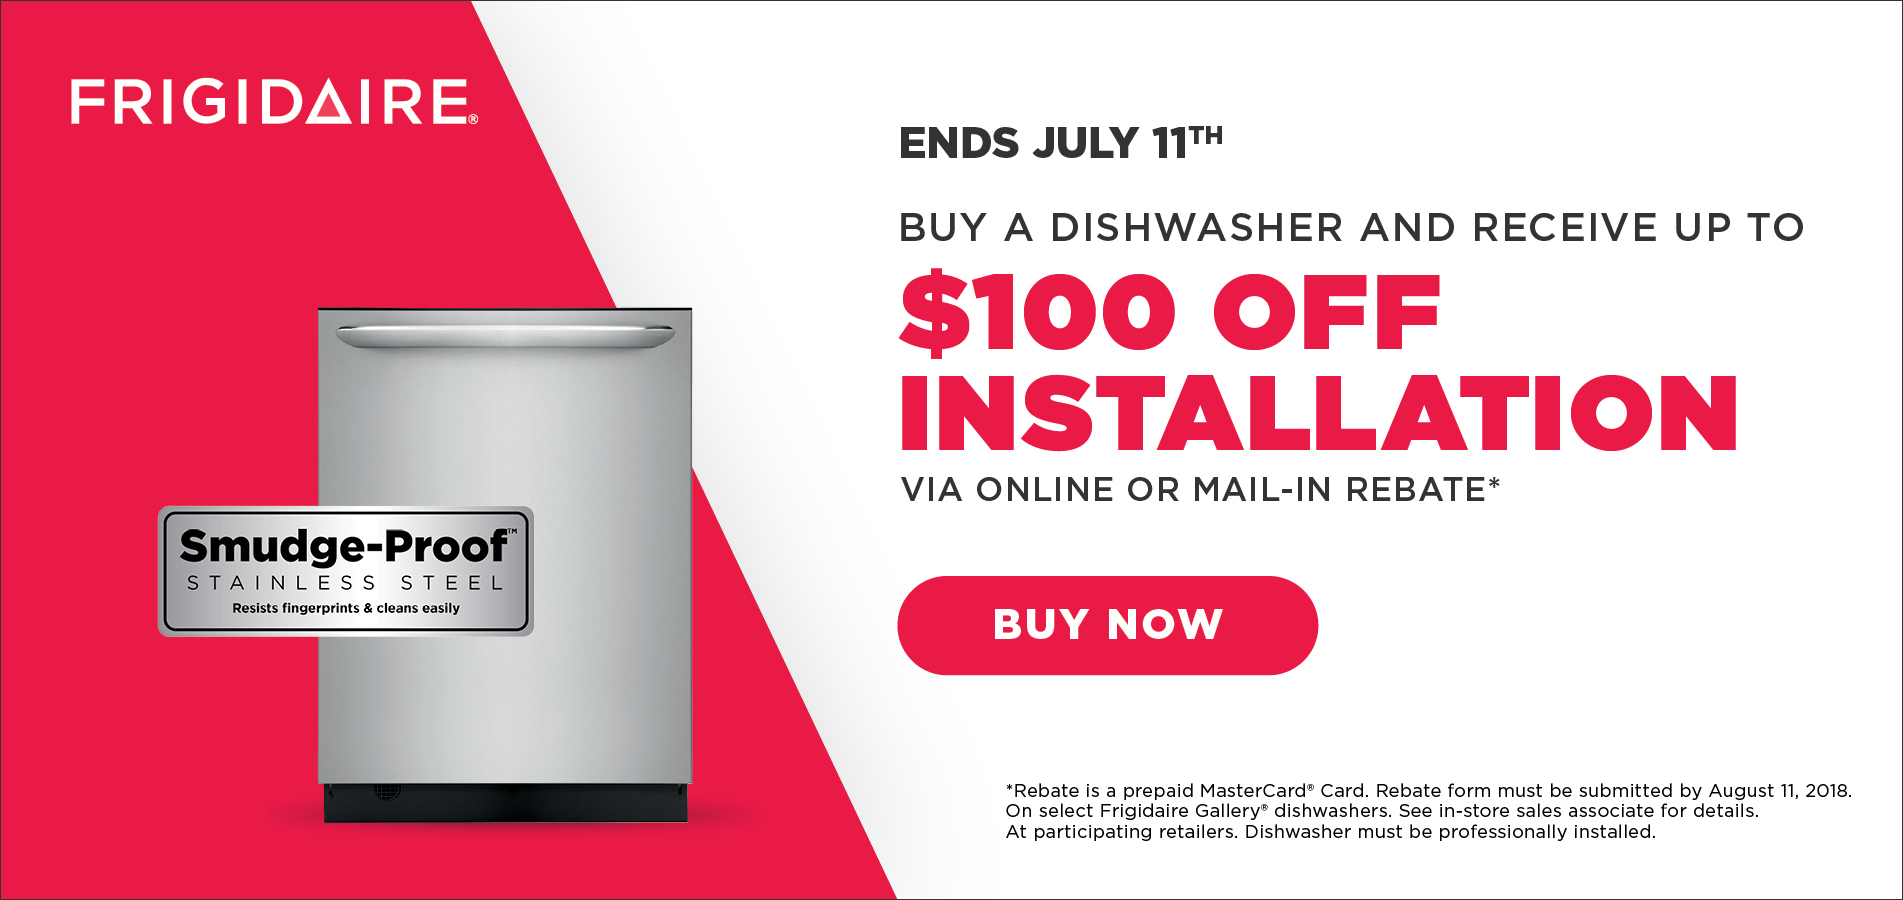 Frigidaire2 4th of July